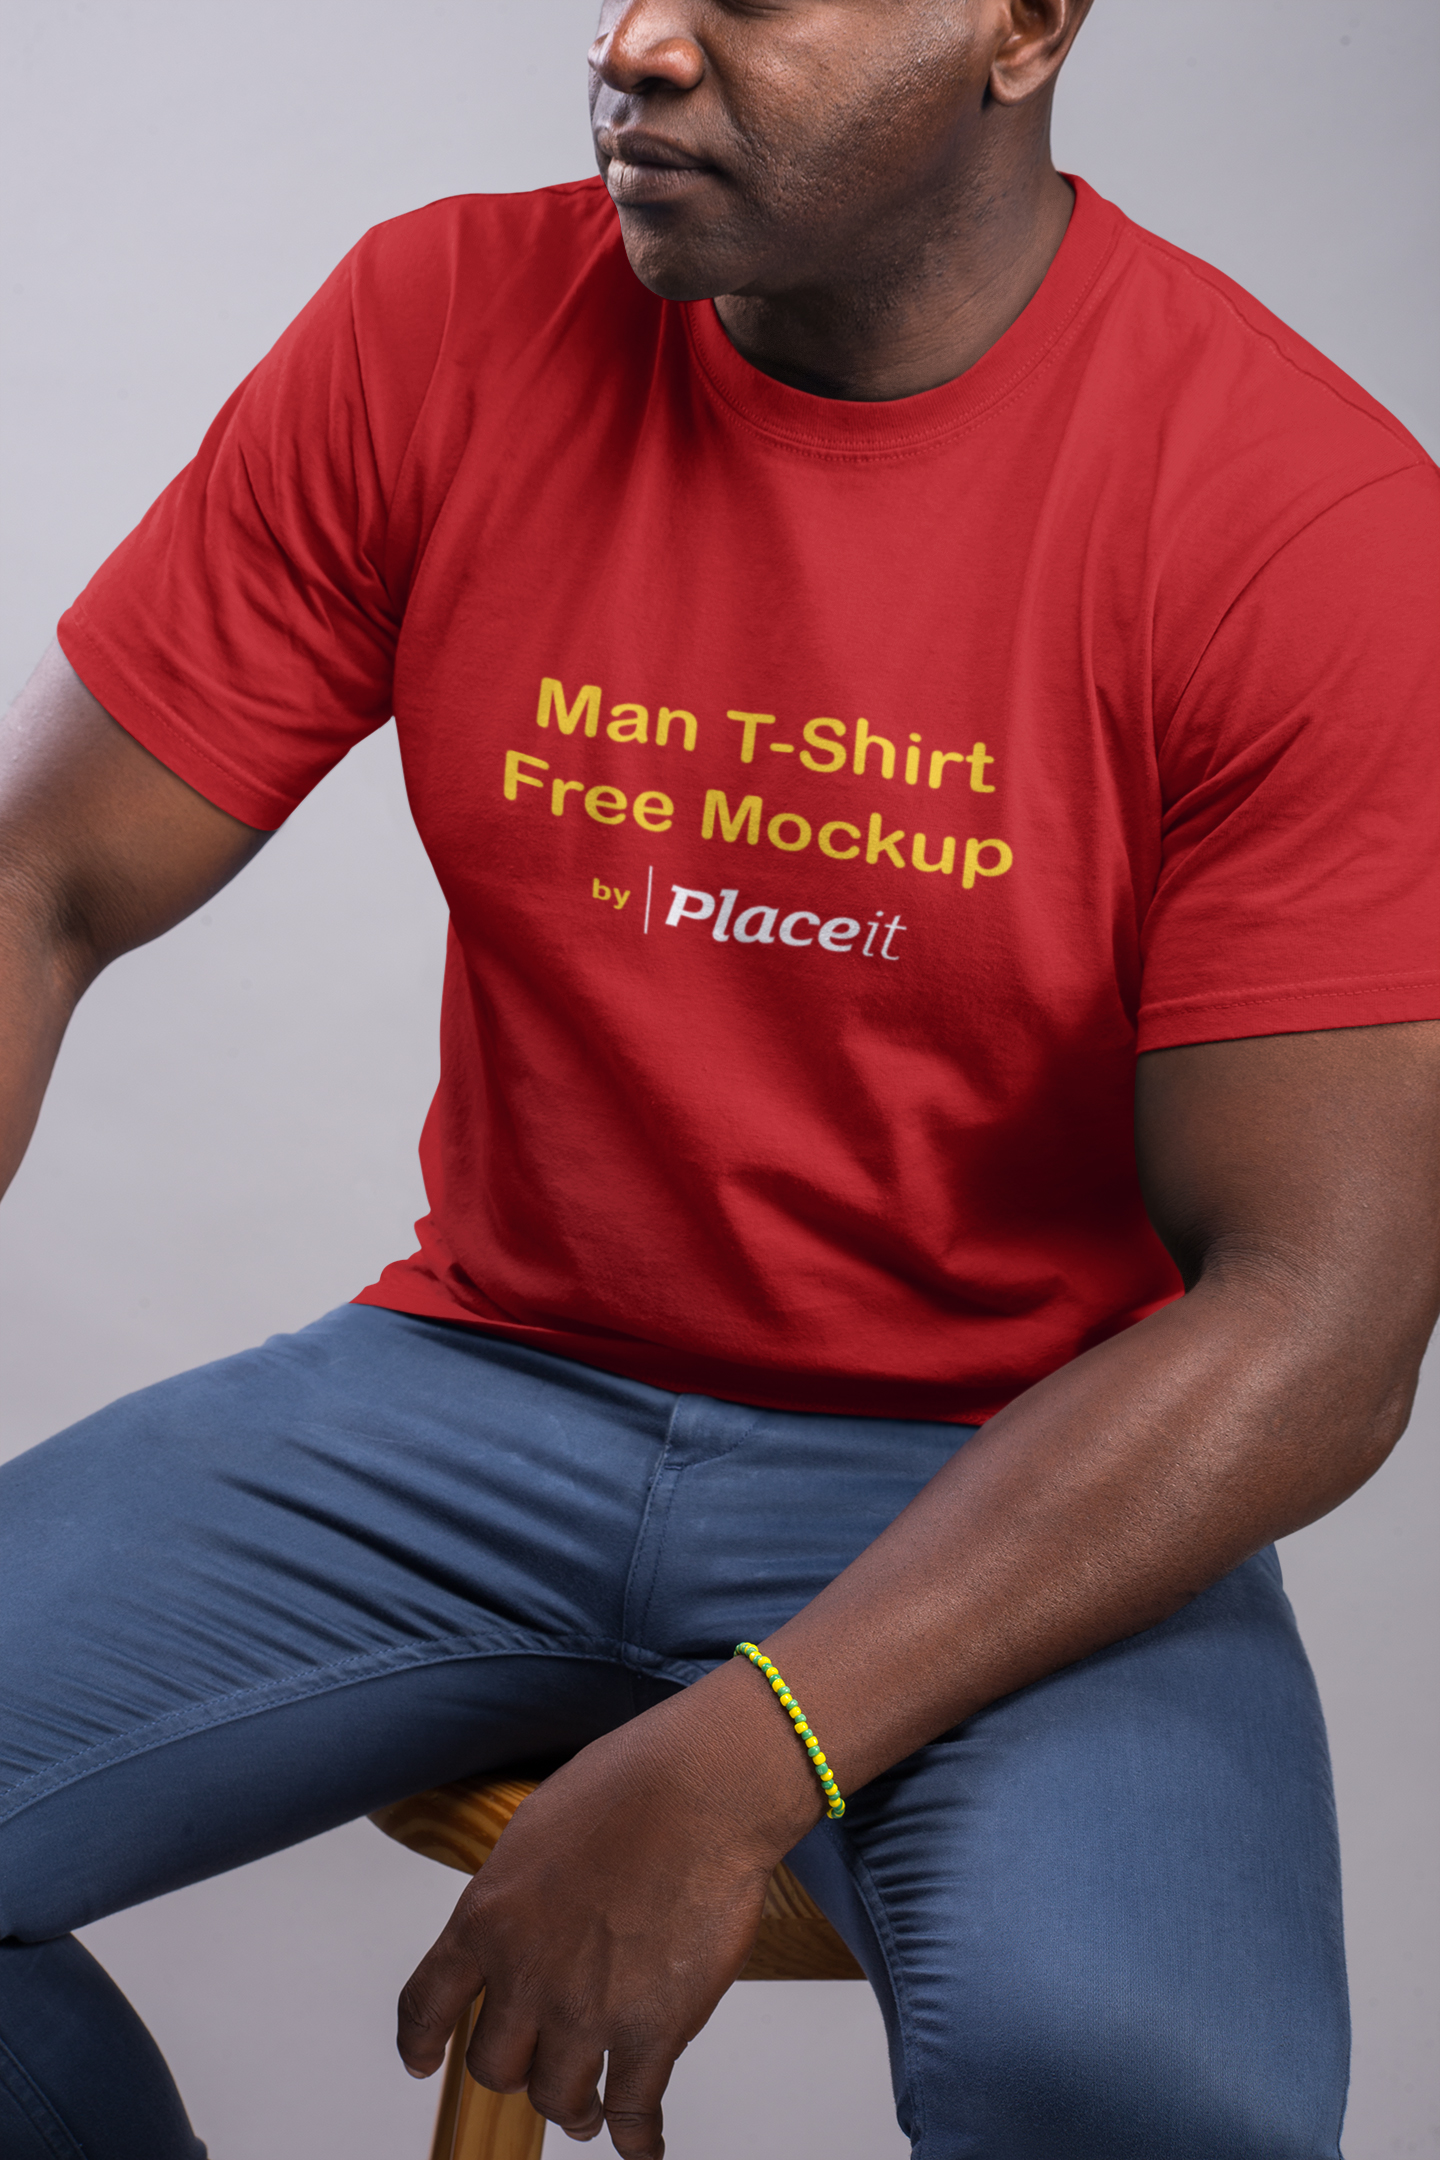 Man T-Shirt Free Mockup by Placeit